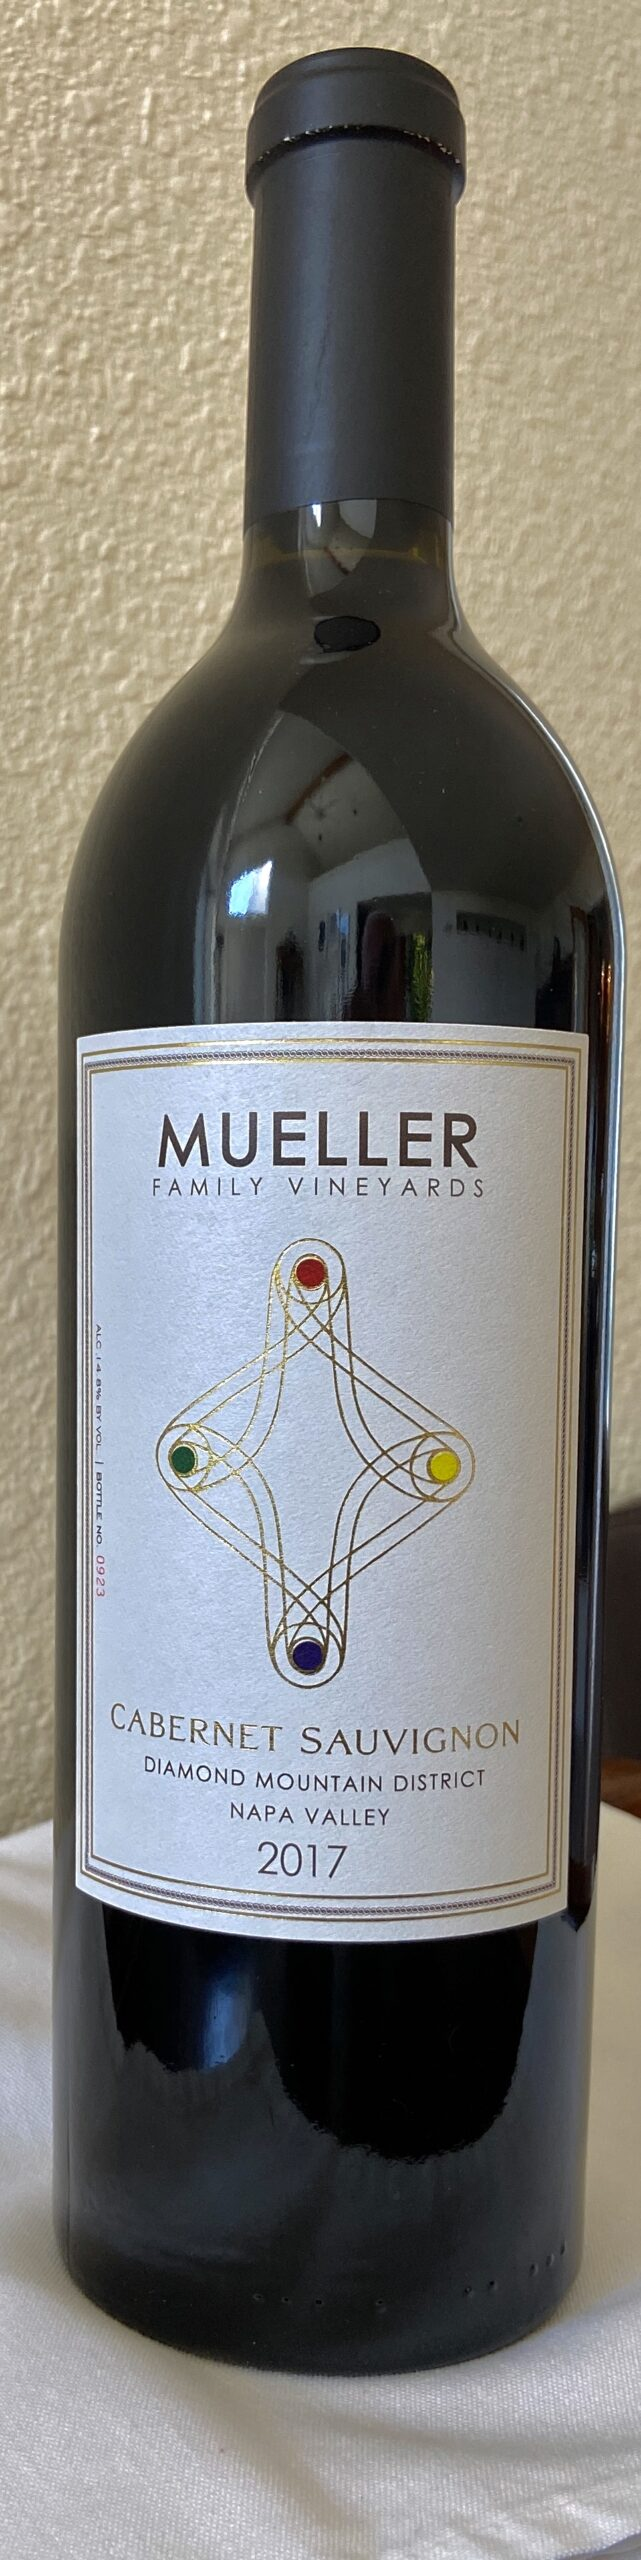 Mueller Family Vineyards 2017 Cabernet Sauvignon